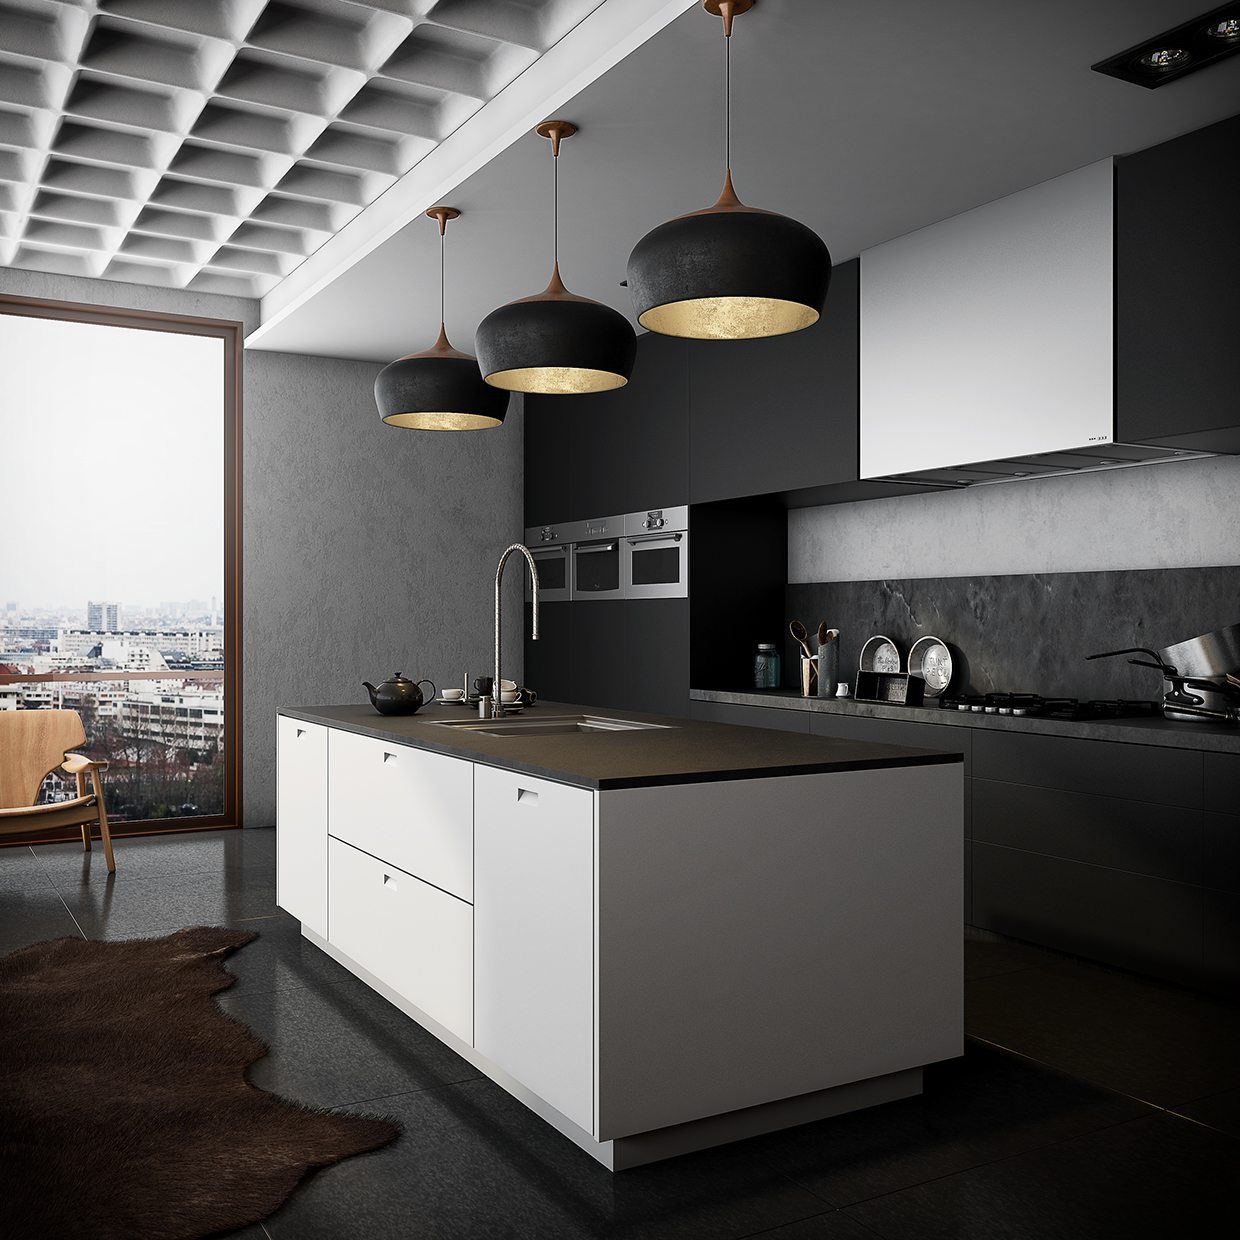 monochromatic-kitchen-black-and-inner-bronze-hanging-lights-black-glossy-floor